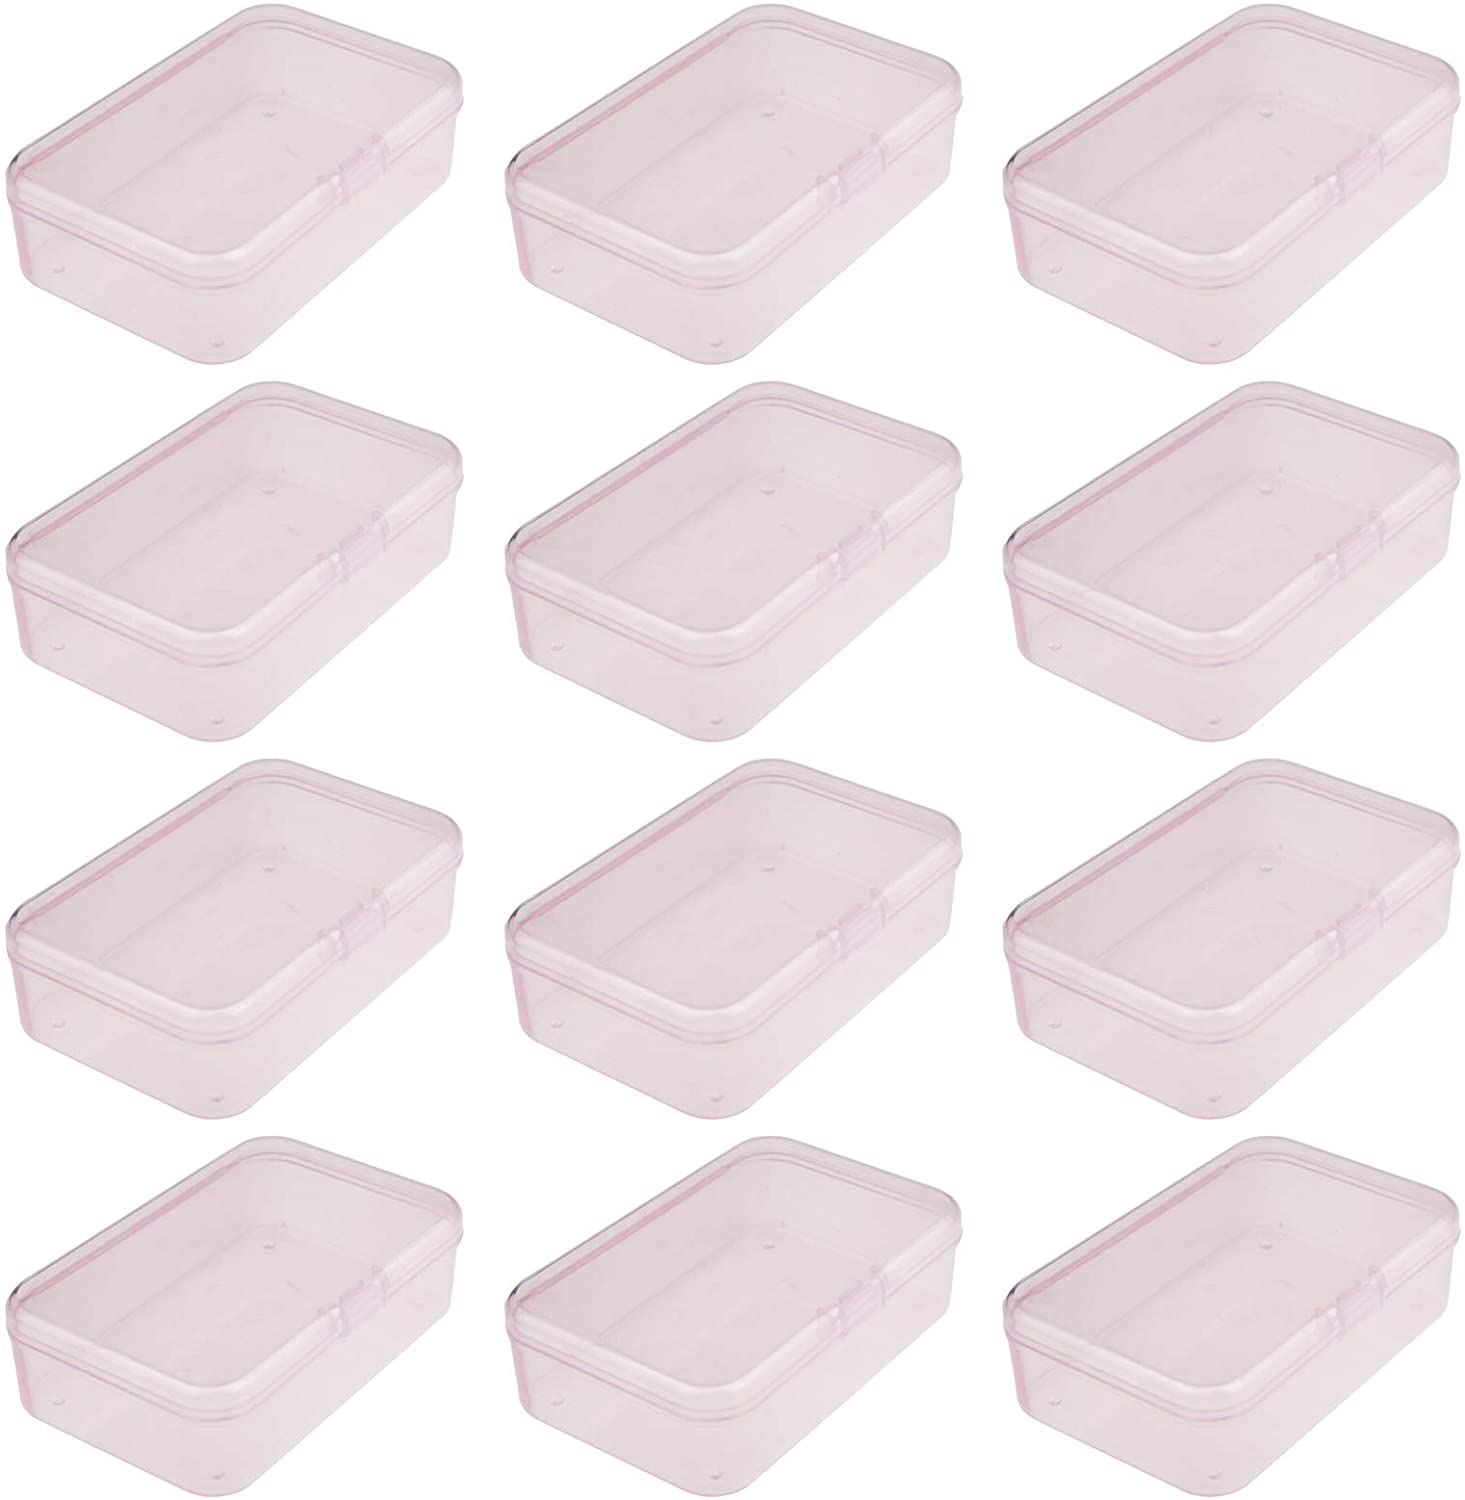 Pink, 85 x 55 x 25 mm Goodma 12 Pieces Rectangular Plastic Boxes Empty Storage Organizer Containers with Hinged Lids for Small Items and Other Craft Projects